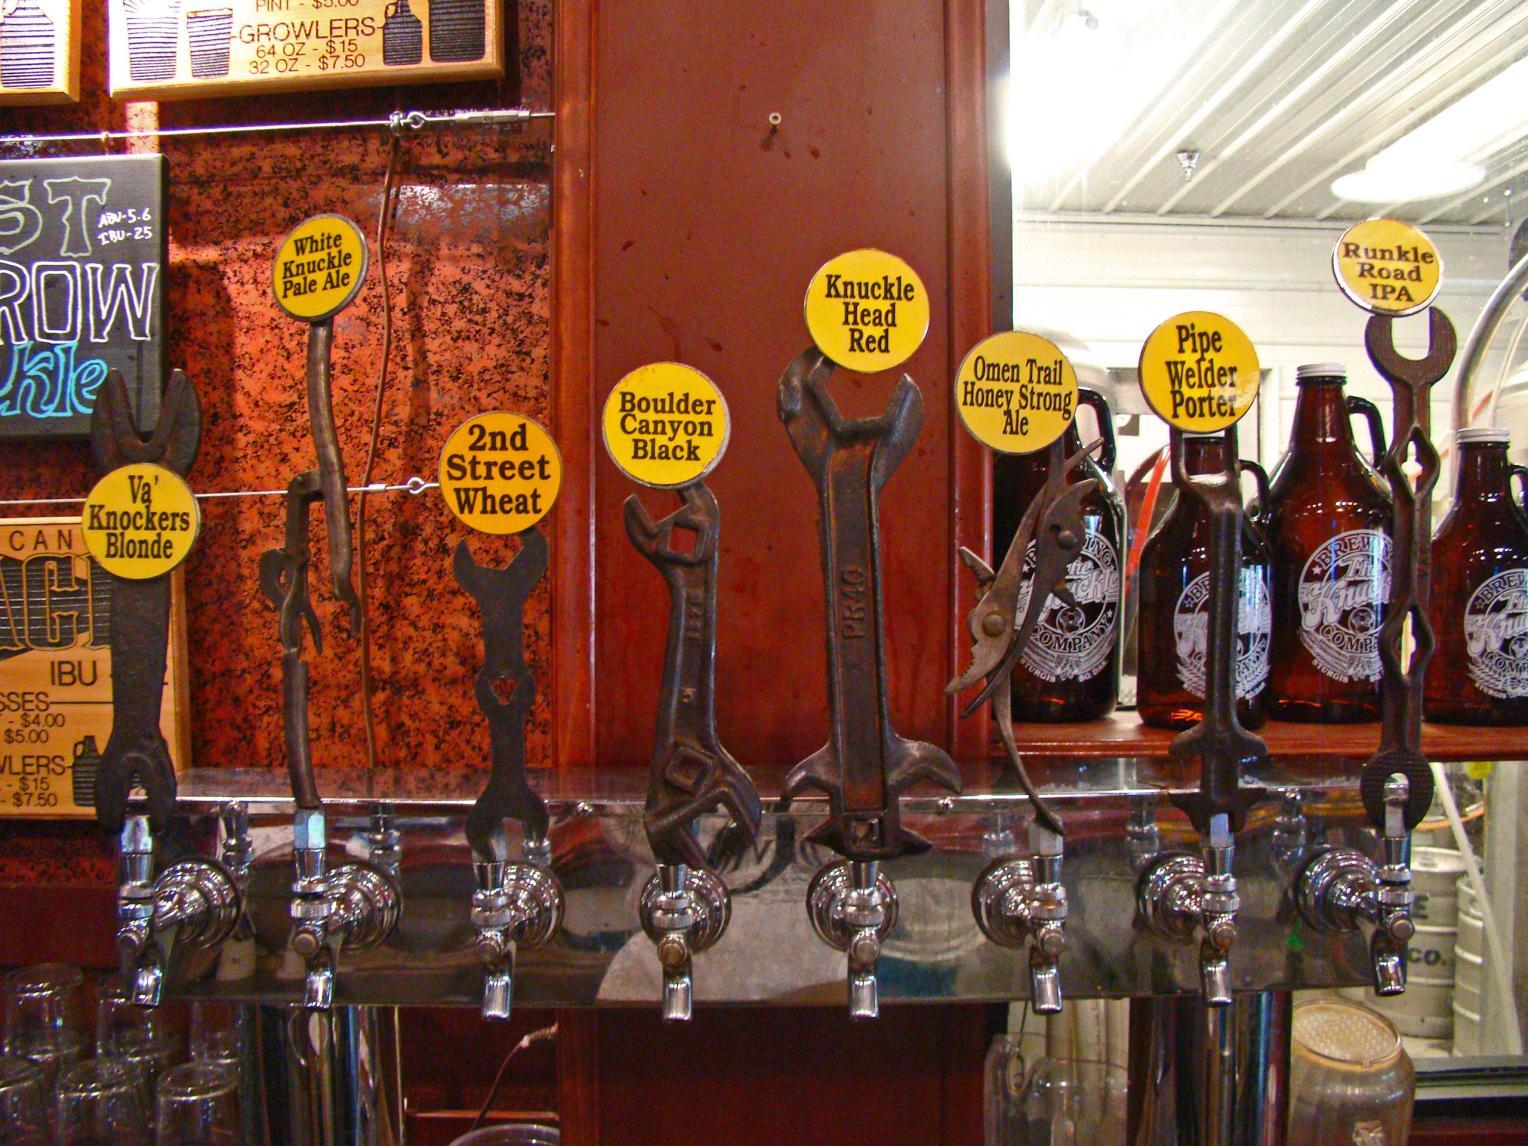 Beers on tap at the Knuckle Brewing Company